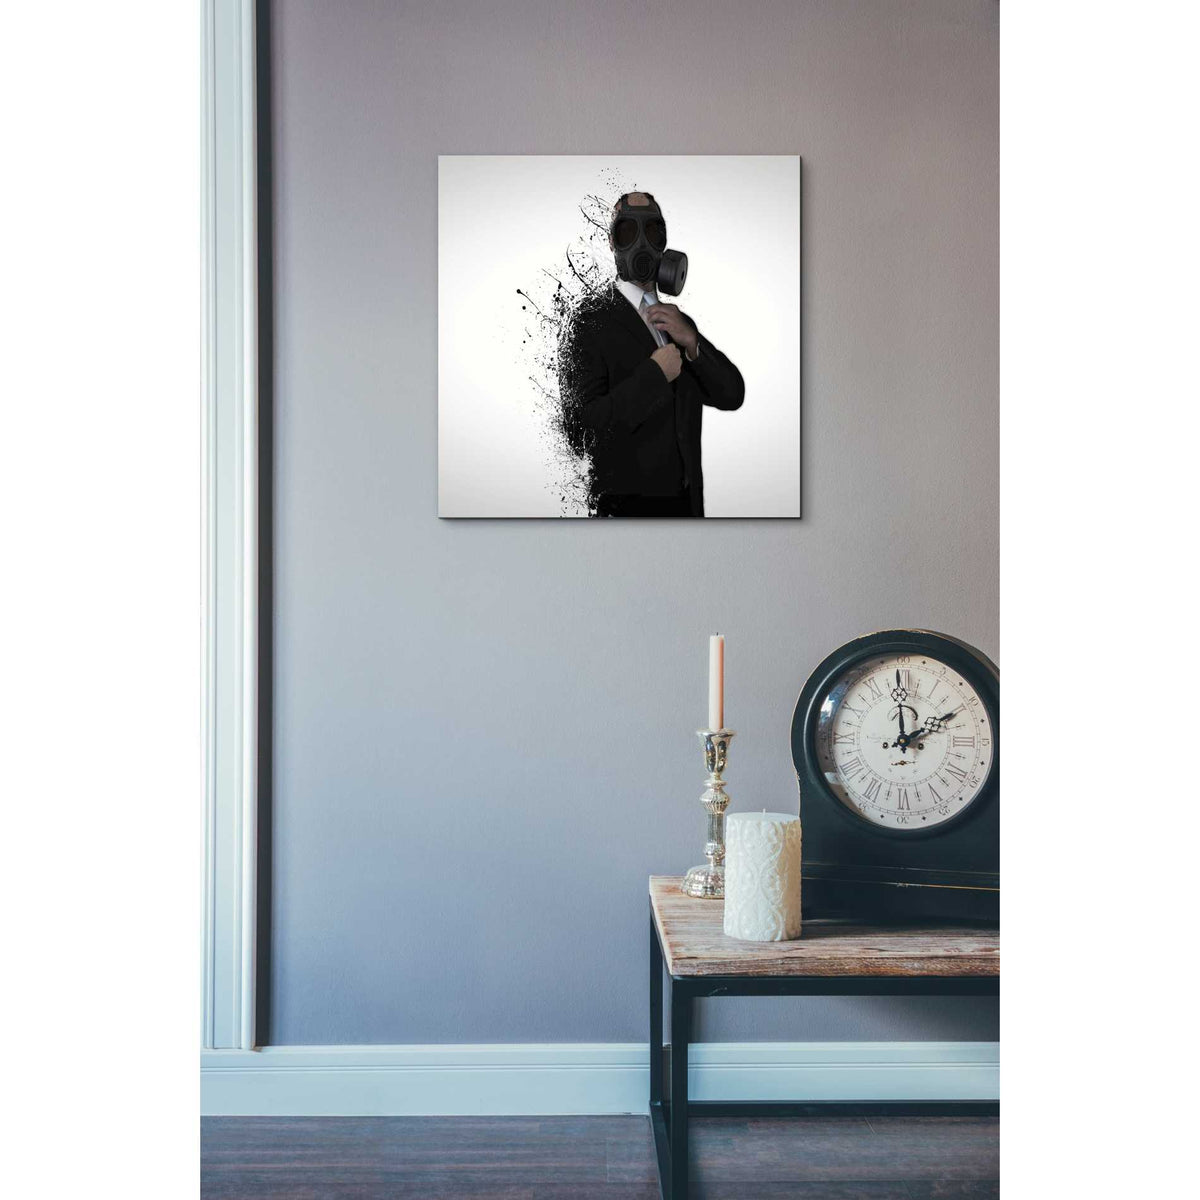 Cortesi Home 'Dissolution of Man' by Nicklas Gustafsson, Canvas Wall Art,18 x 18